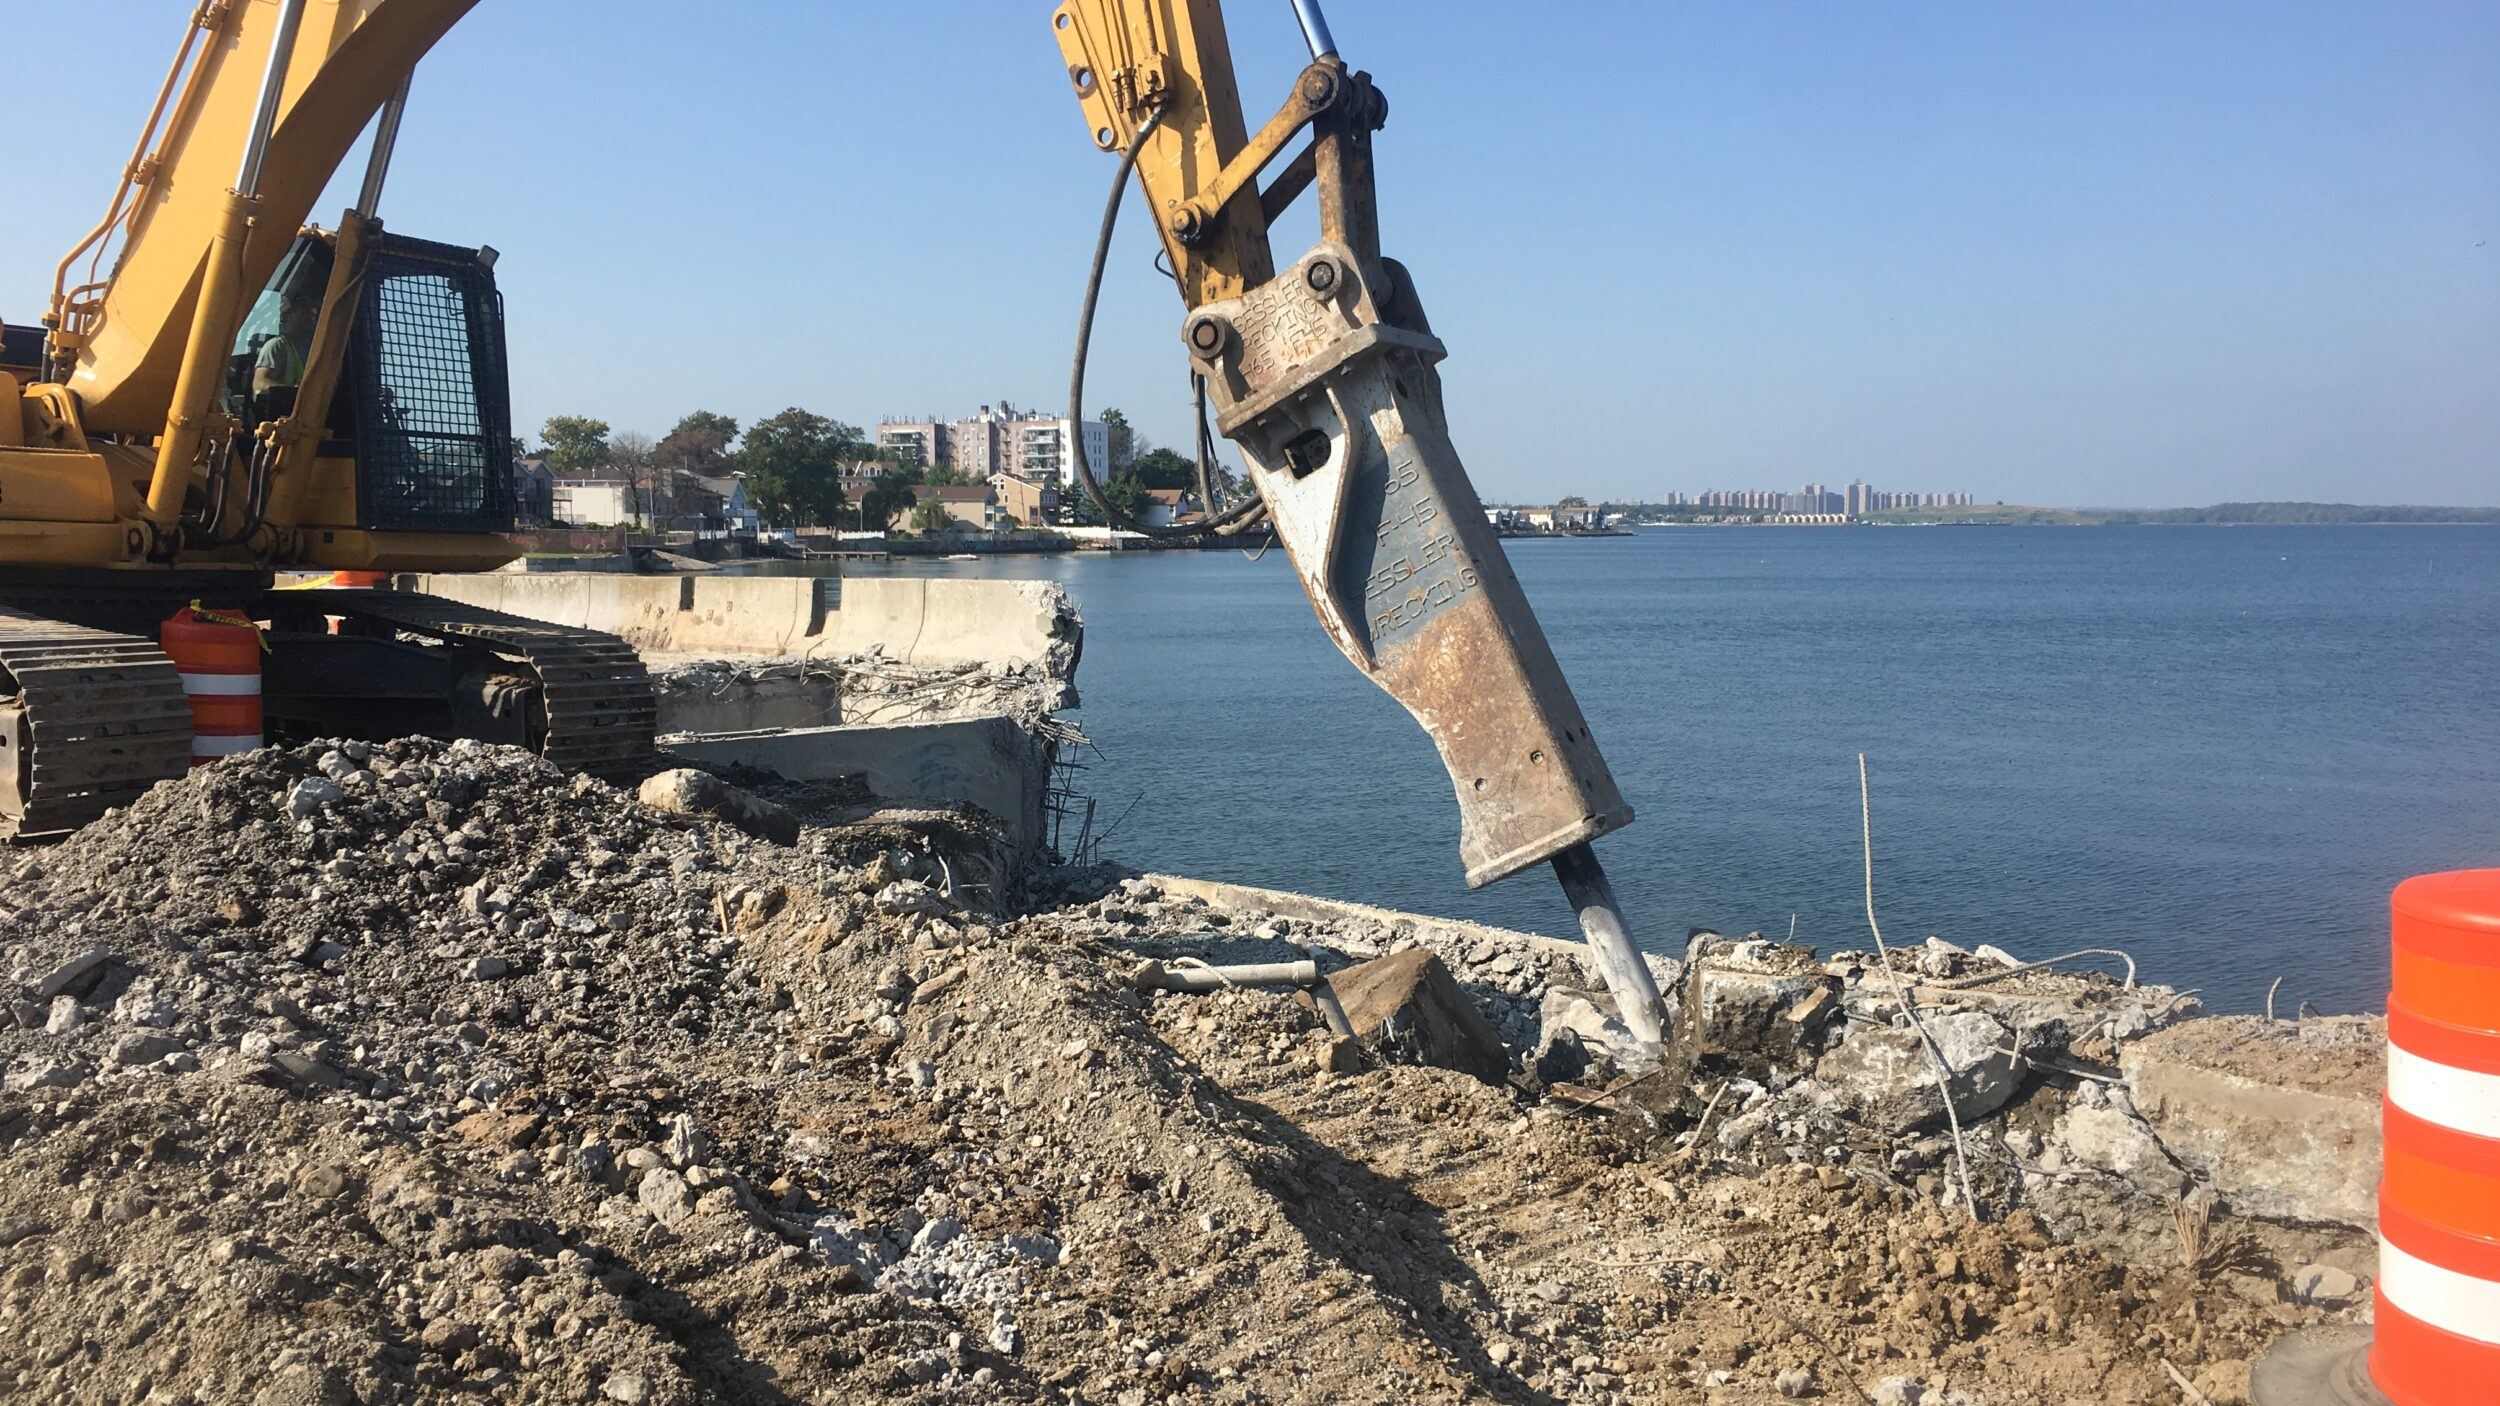 Hammer attachment on excavator